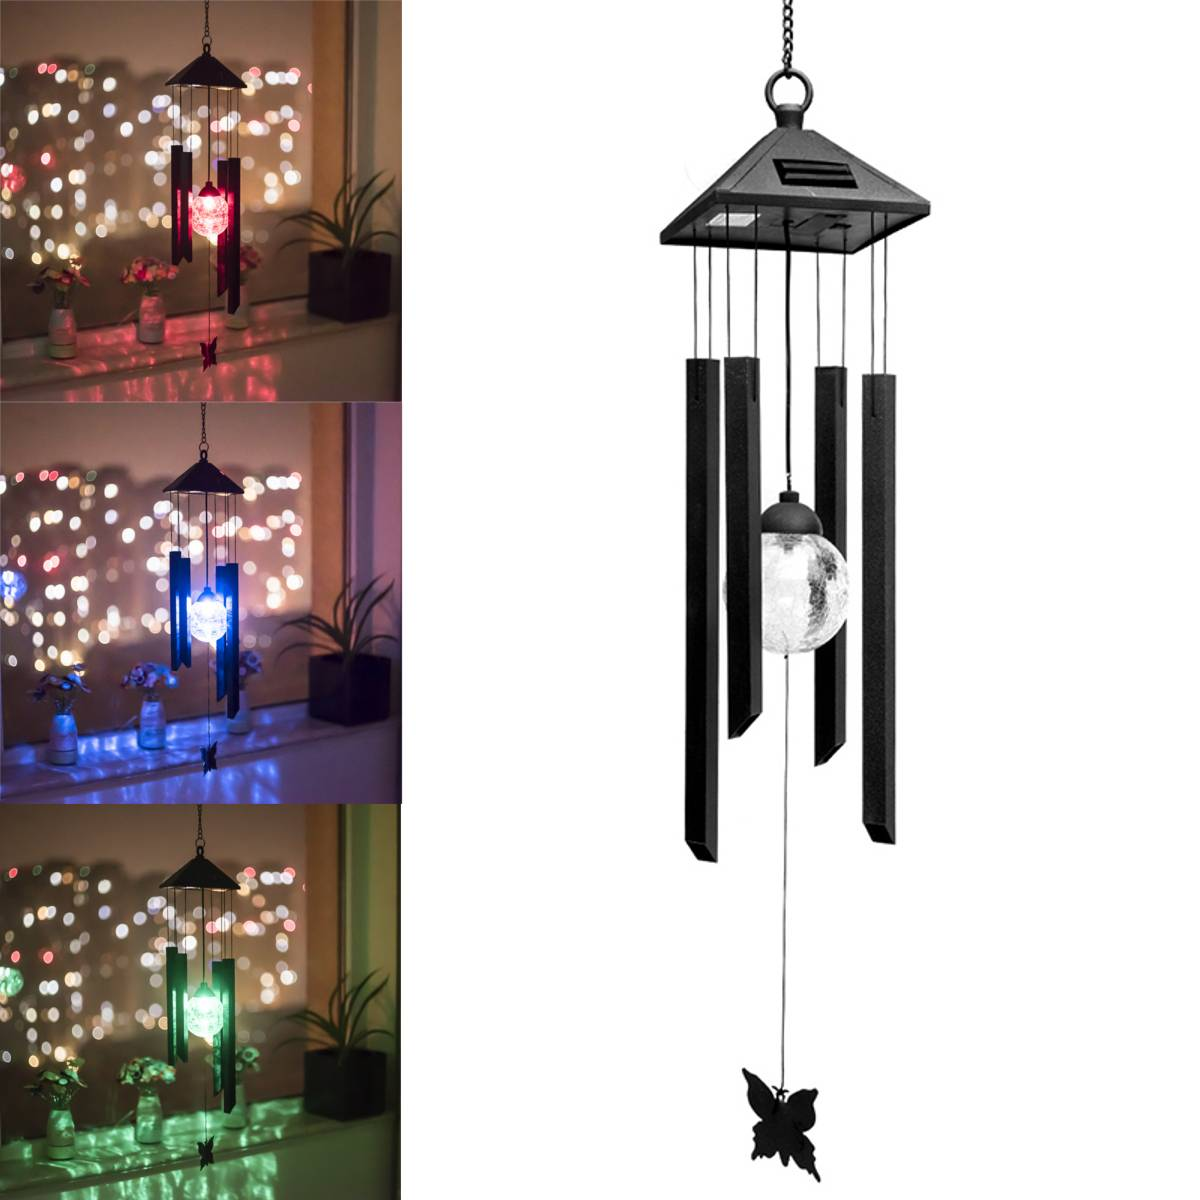 Outdoor LED Solar Lamp Hummingbirds dragonfly Wind Home Garden Decor Solar Light Solar Powered Color-Changing Wind Chime LightOutdoor LED Solar Lamp Hummingbirds dragonfly Wind Home Garden Decor Solar Light Solar Powered Color-Changing Wind Chime Light